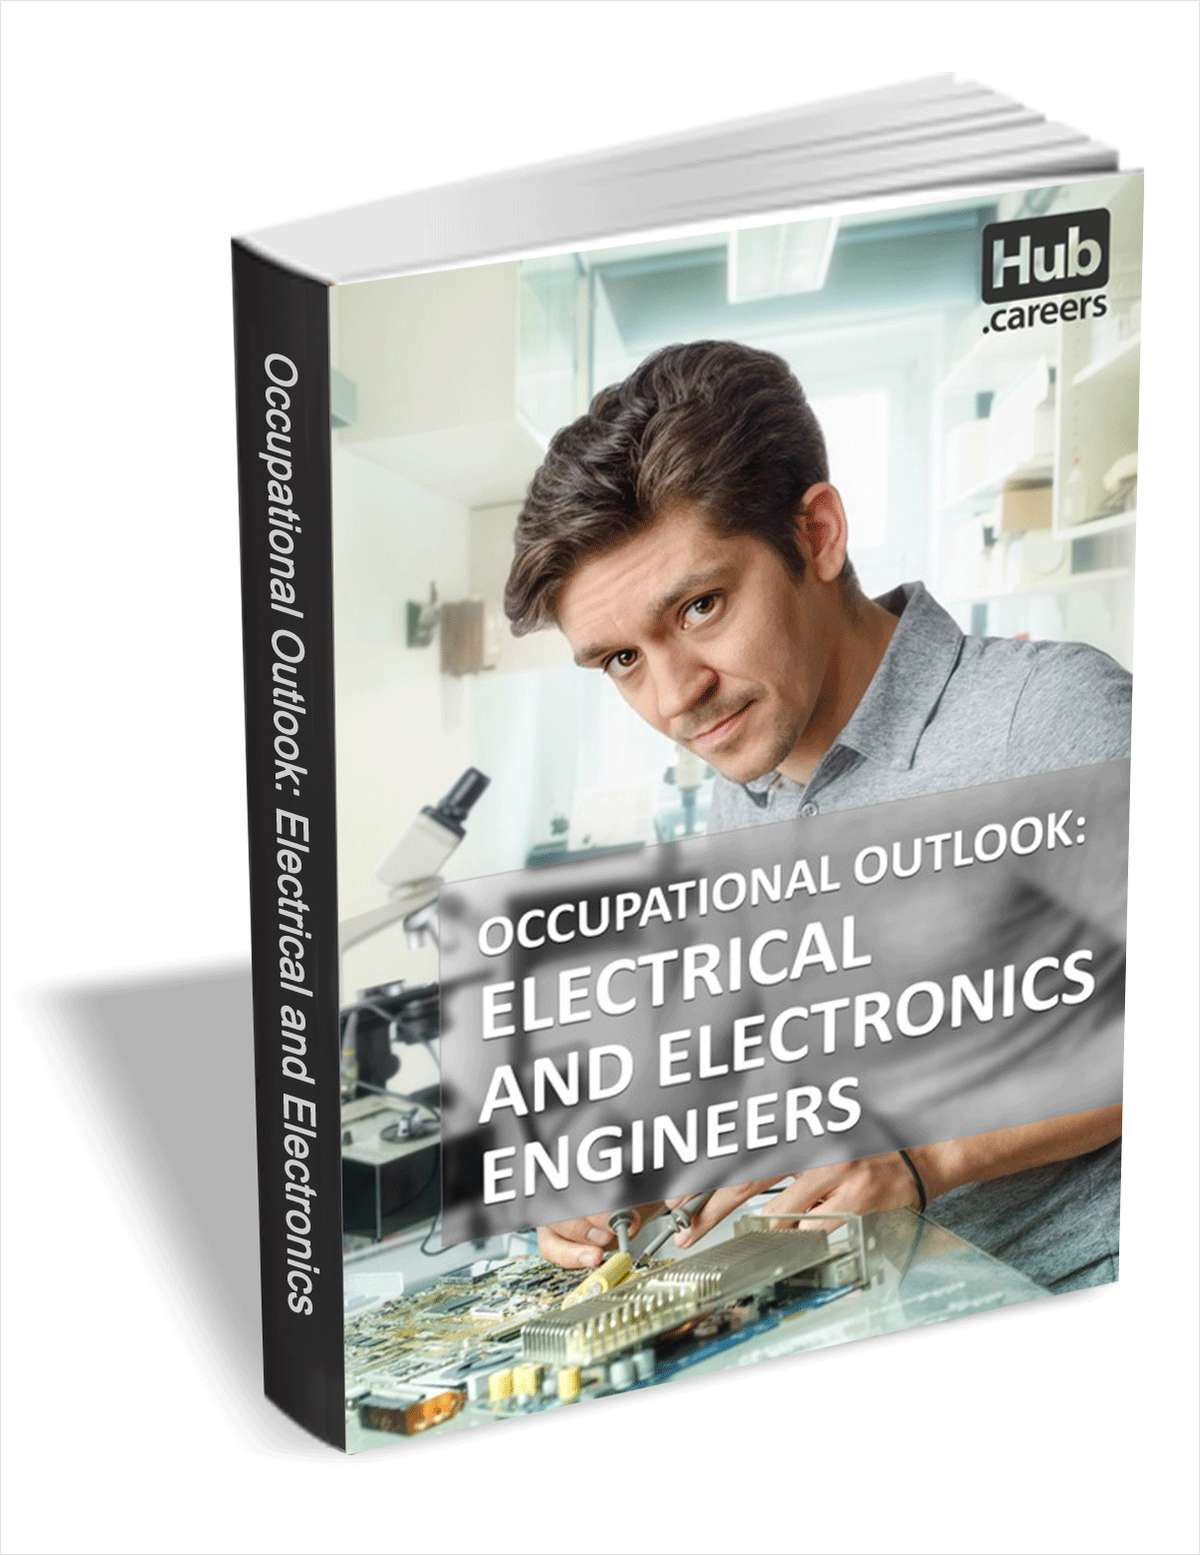 Electrical and Electronics Engineers - Occupational Outlook